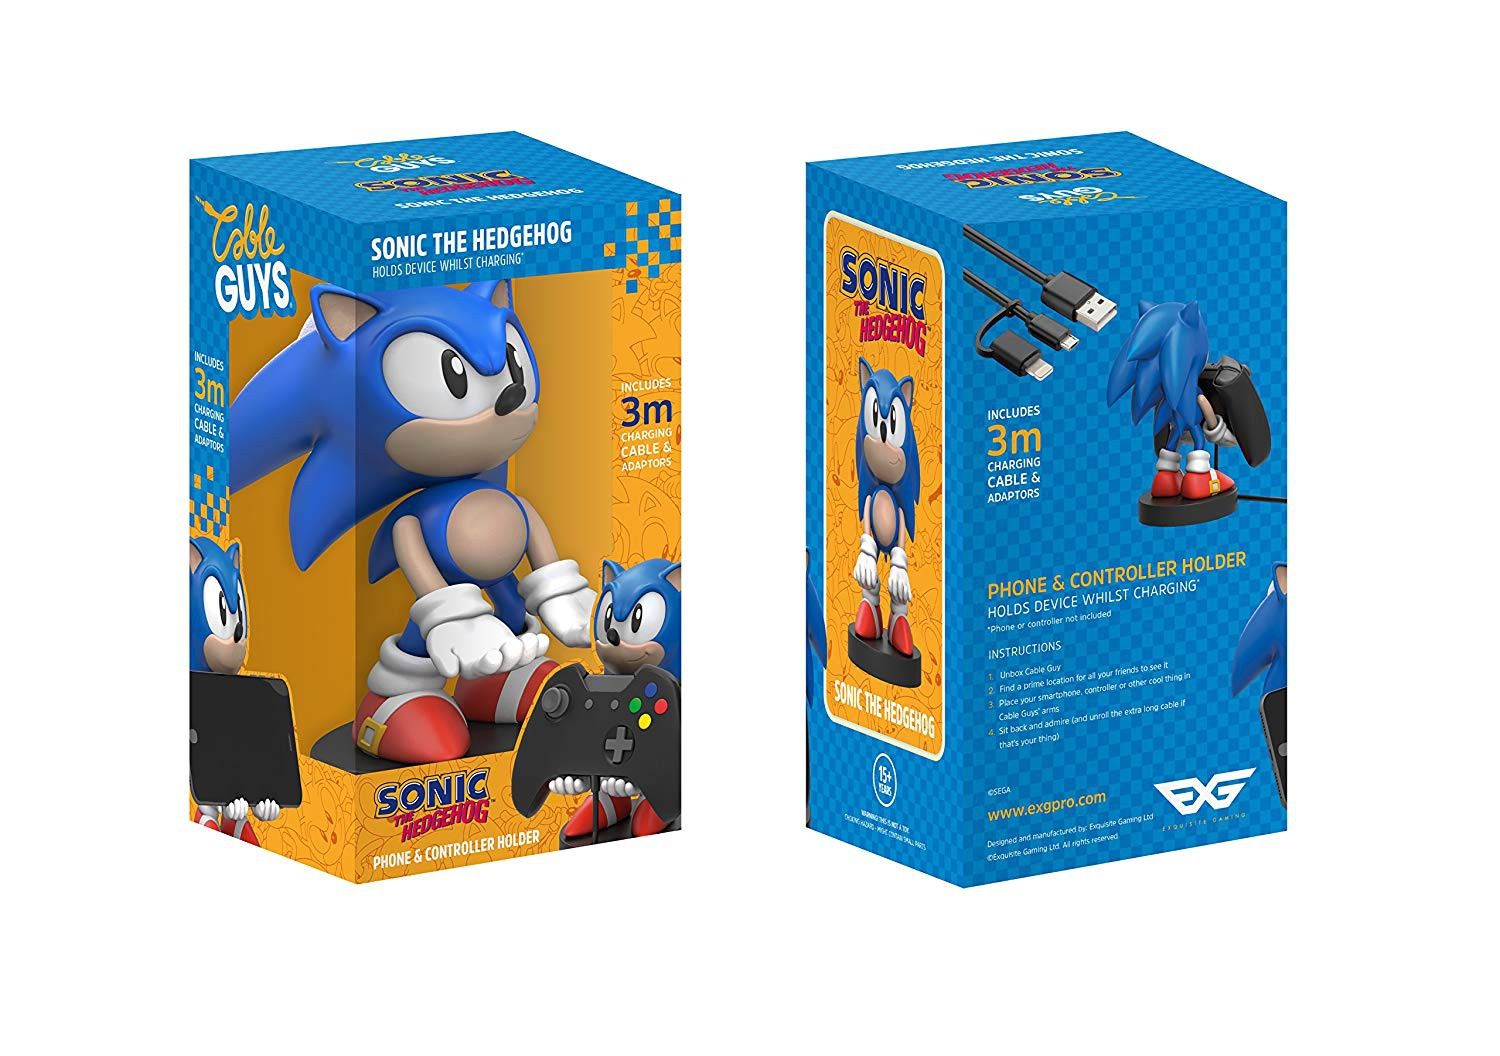 Sonic The Hedgehog Cable Guy stovas